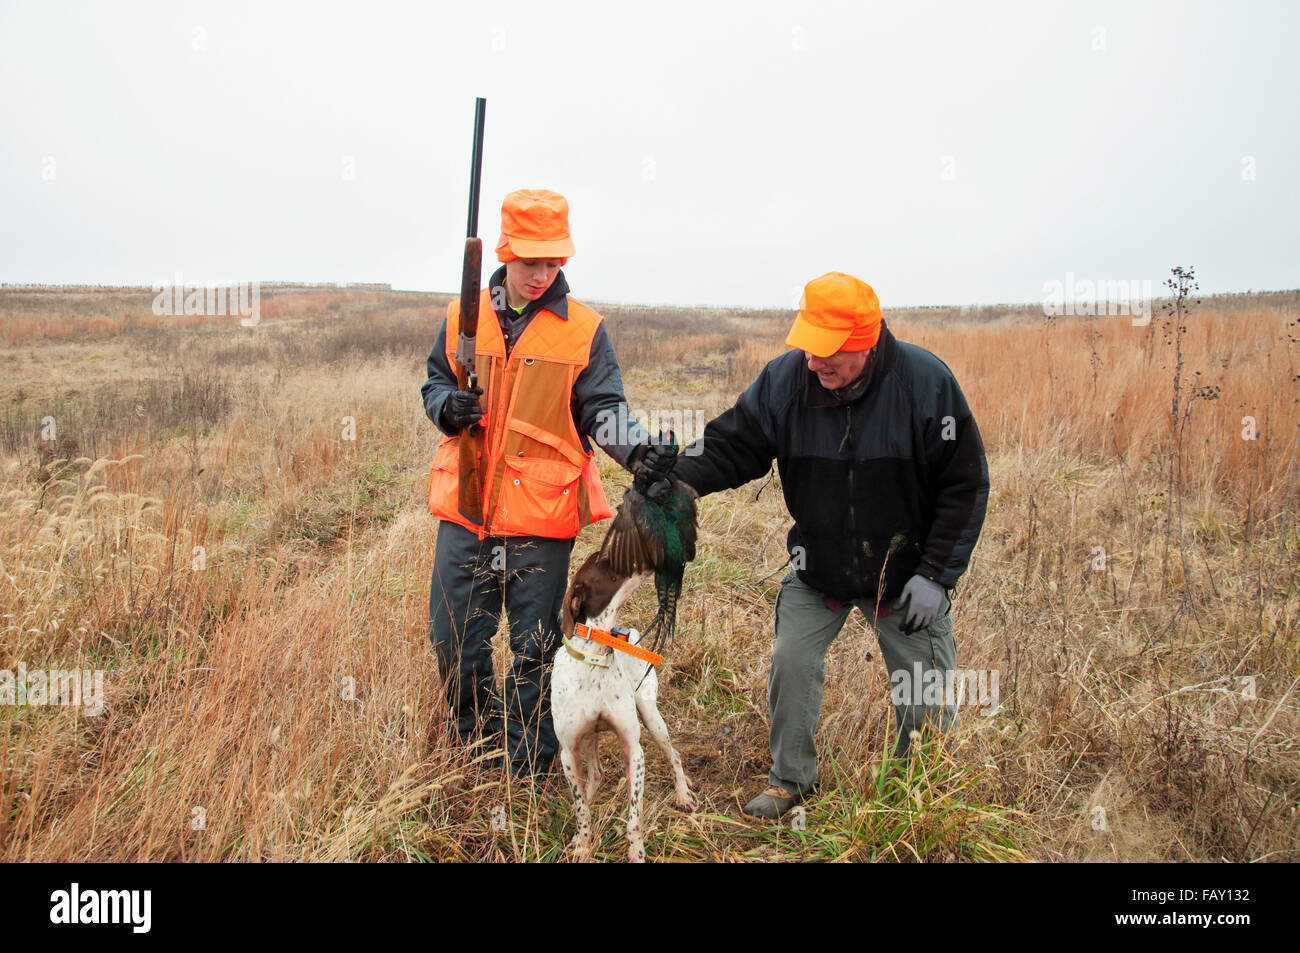 Man and boy grab pheasant from trained hunting bird dog - Stock Image